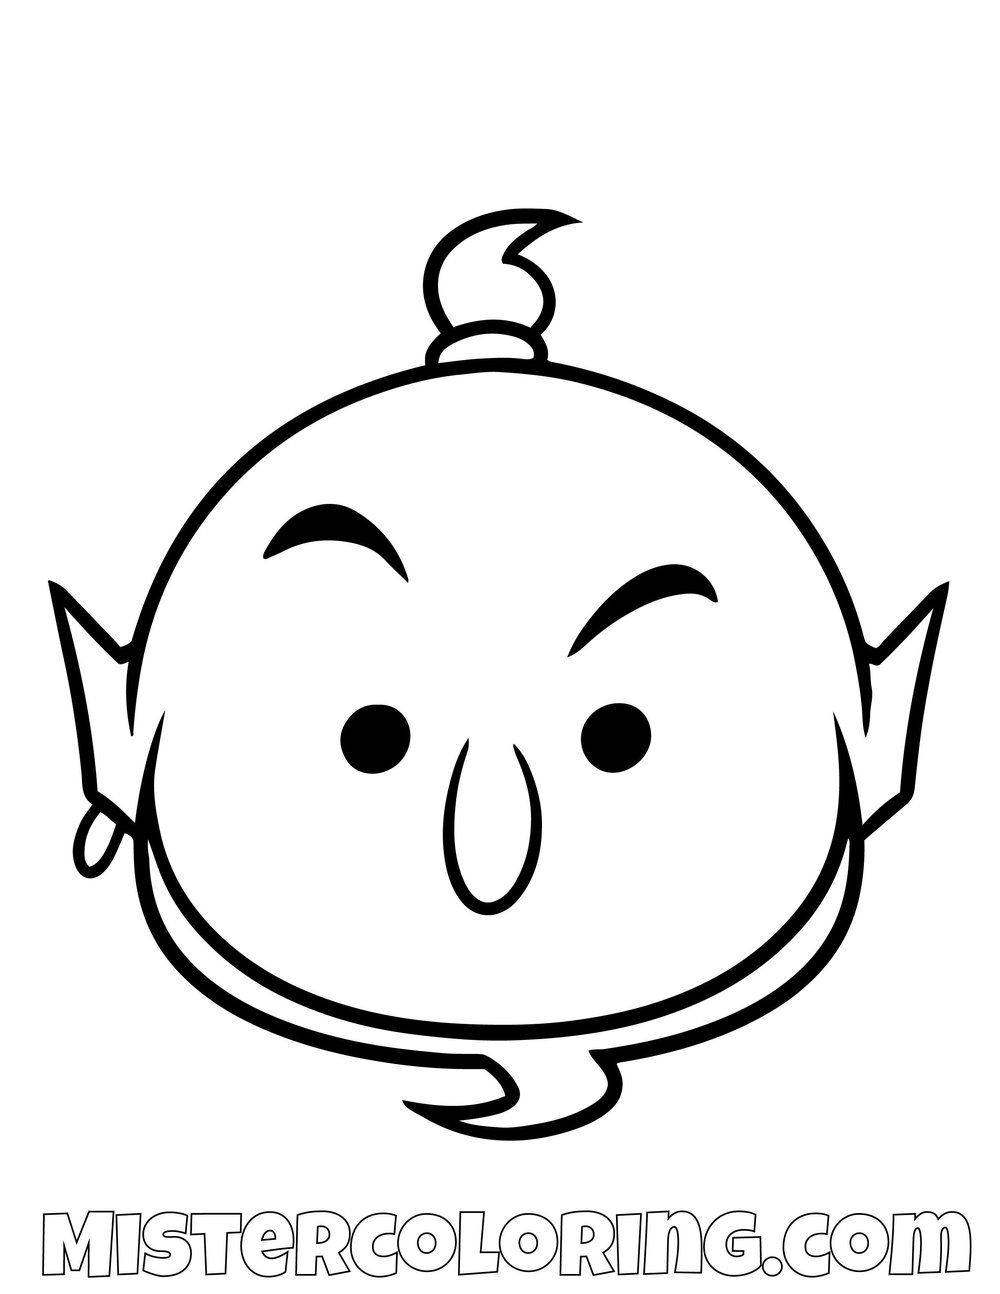 Genie From Aladdin Tsum Tsum Coloring Pages For Kids Tsum Tsum Coloring Pages Disney Coloring Pages Free Disney Coloring Pages